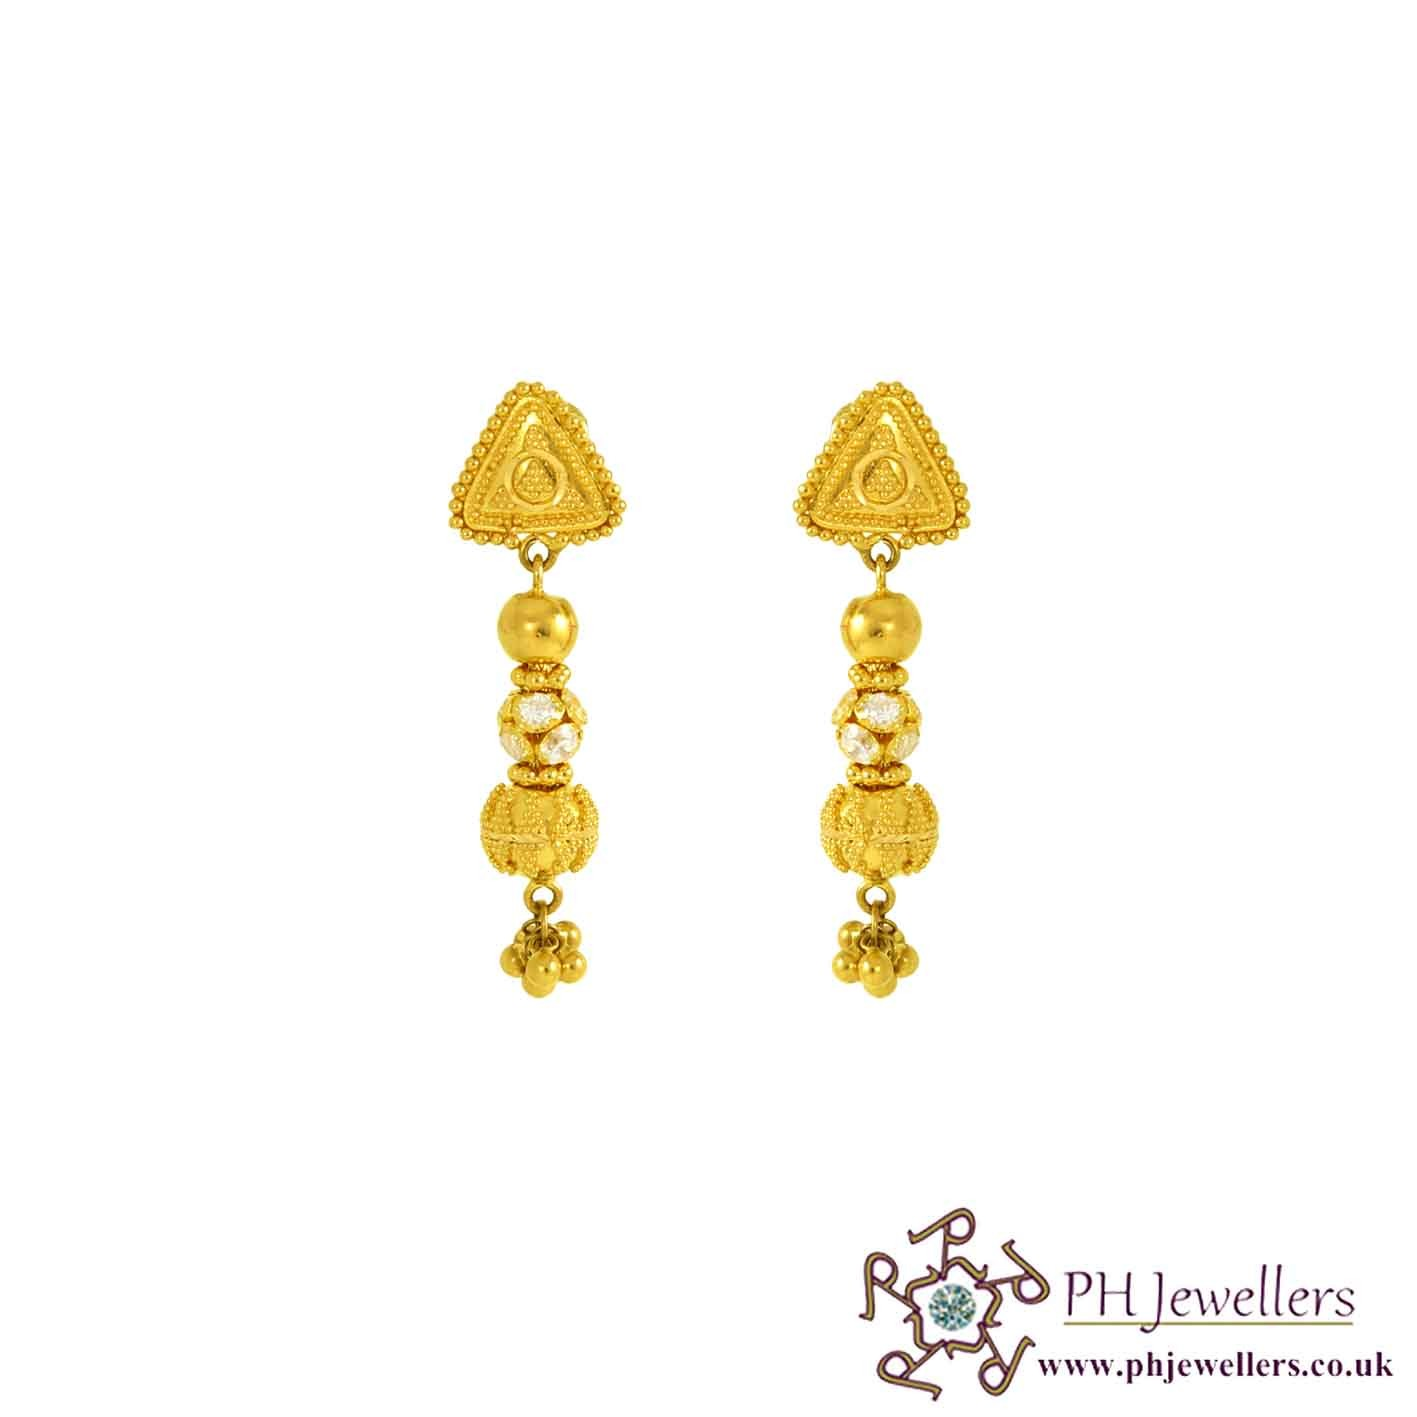 jewellery earrings stones set rj drop jhumka gold choker with pearls